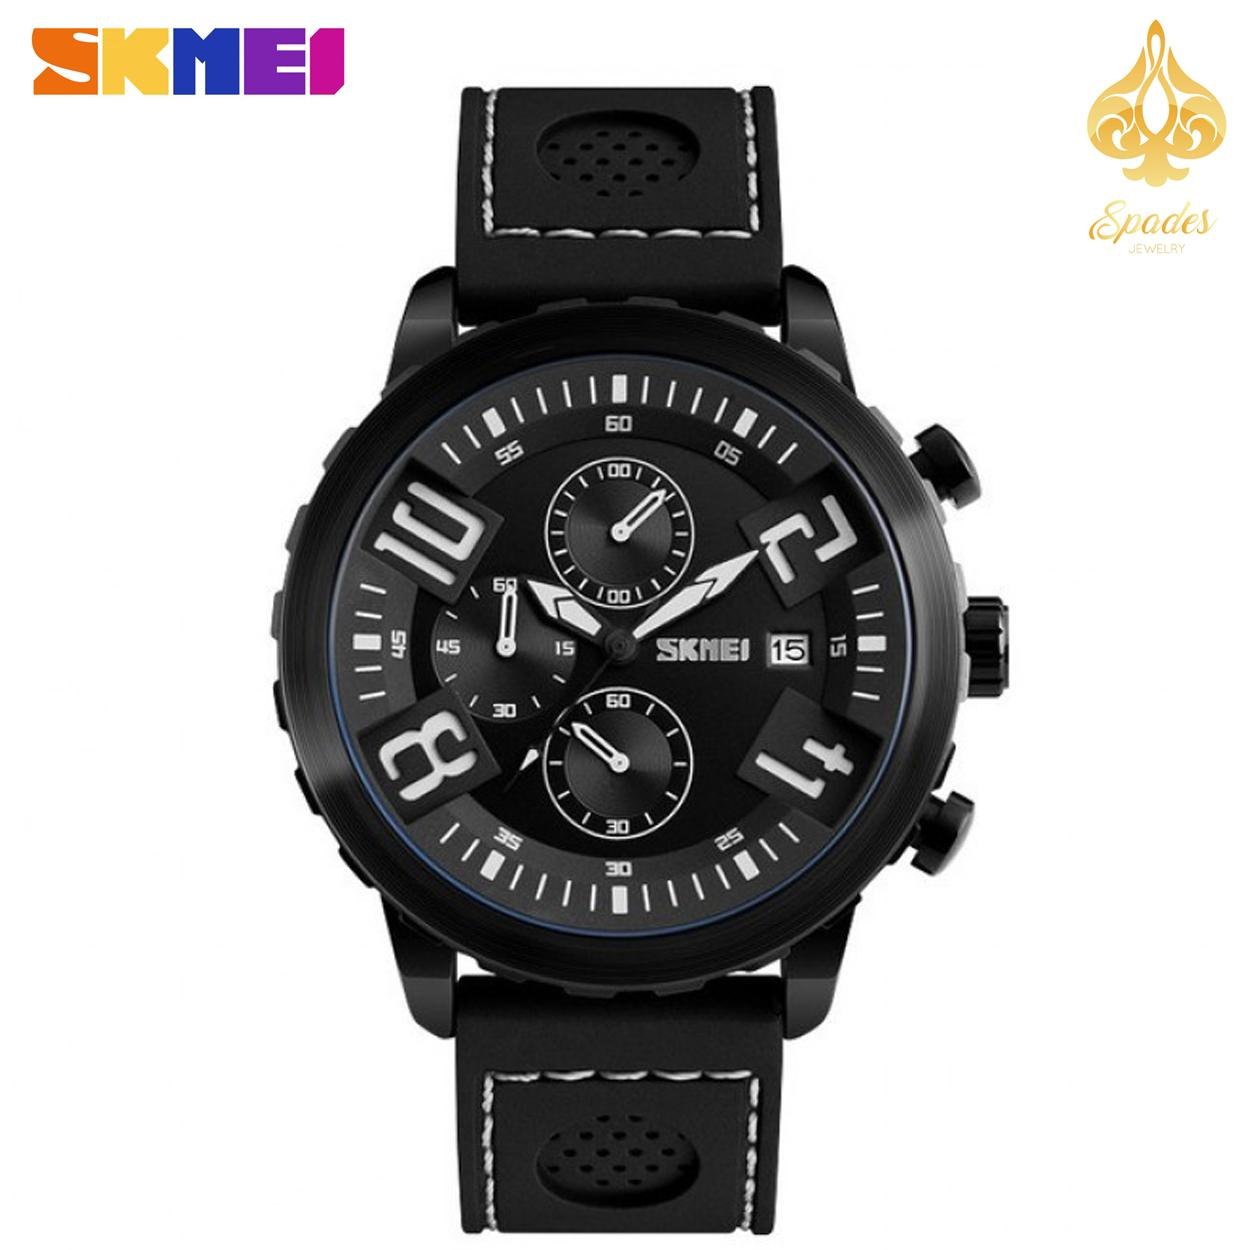 SKMEI 9153 Fashion Sports Watches Men (Black)